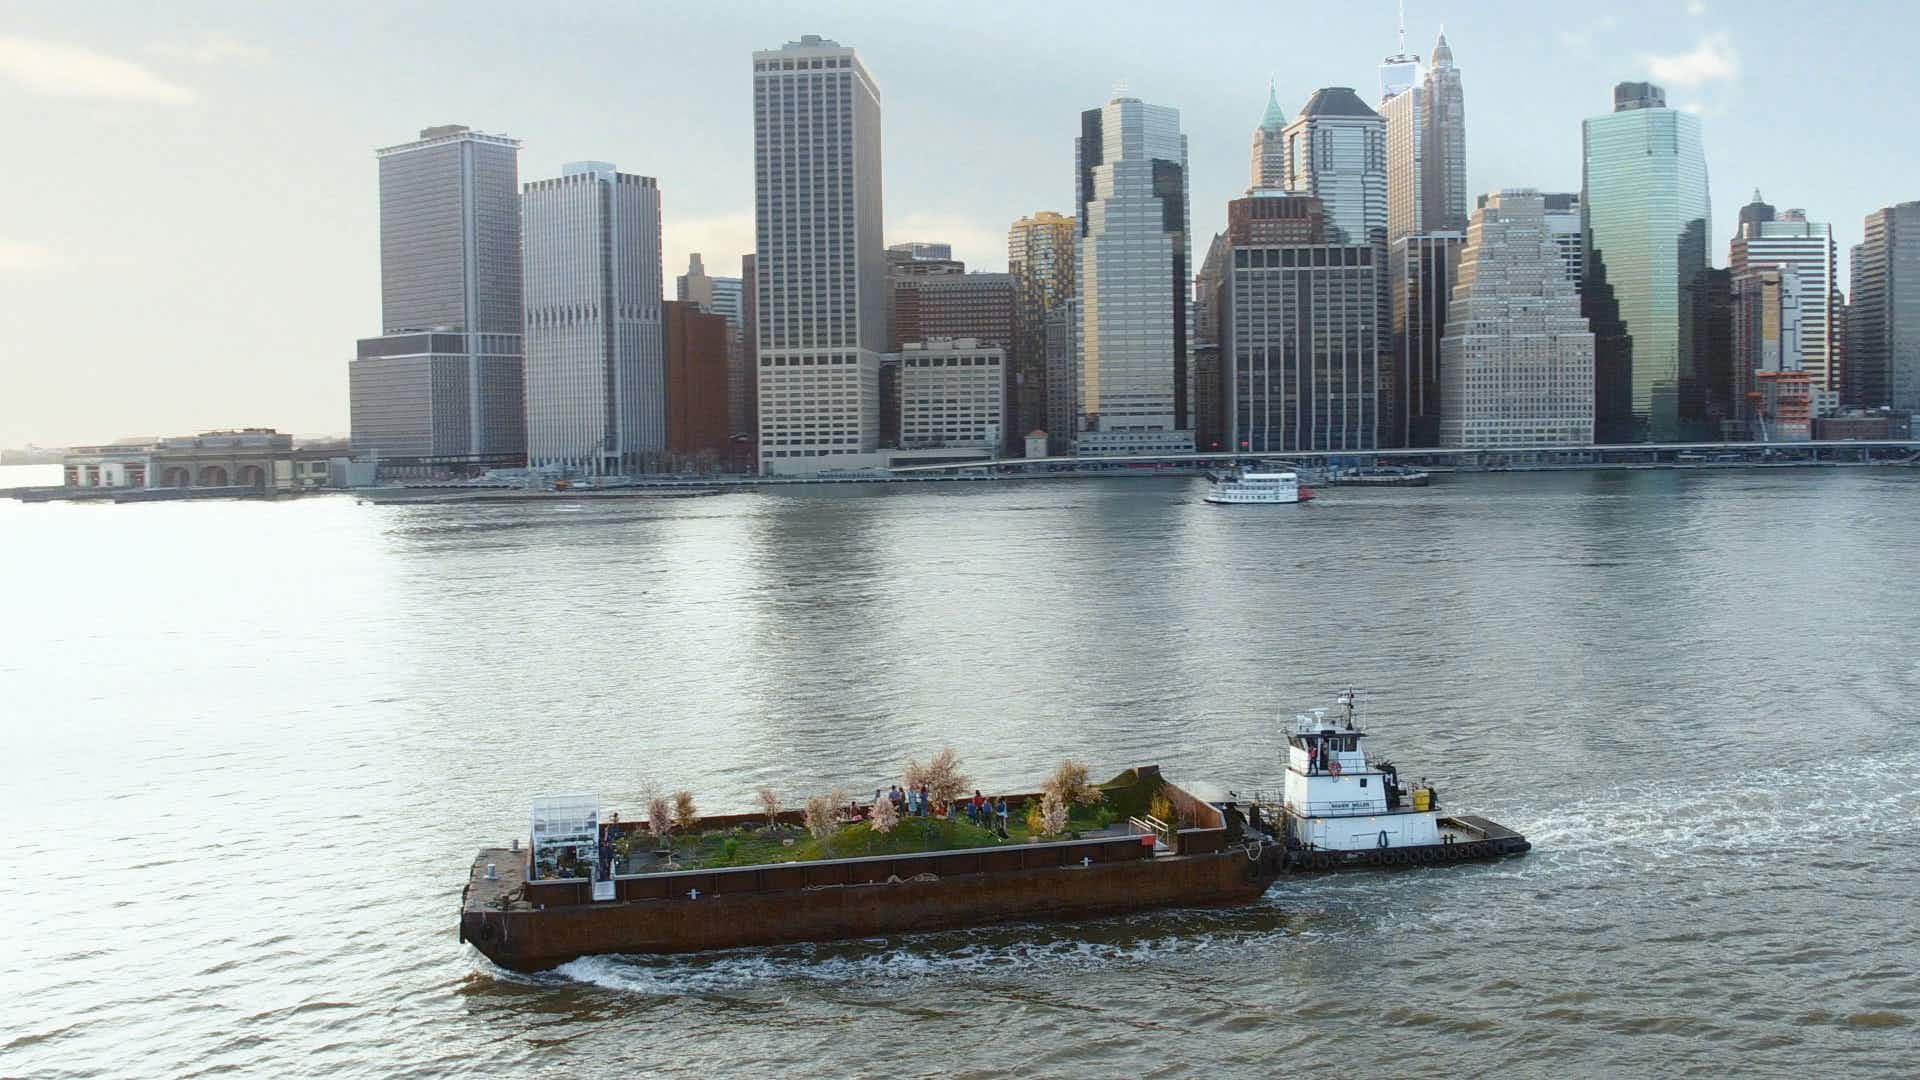 City dwellers can forage for berries, kale, and more as the Big Apple's floating forest returns